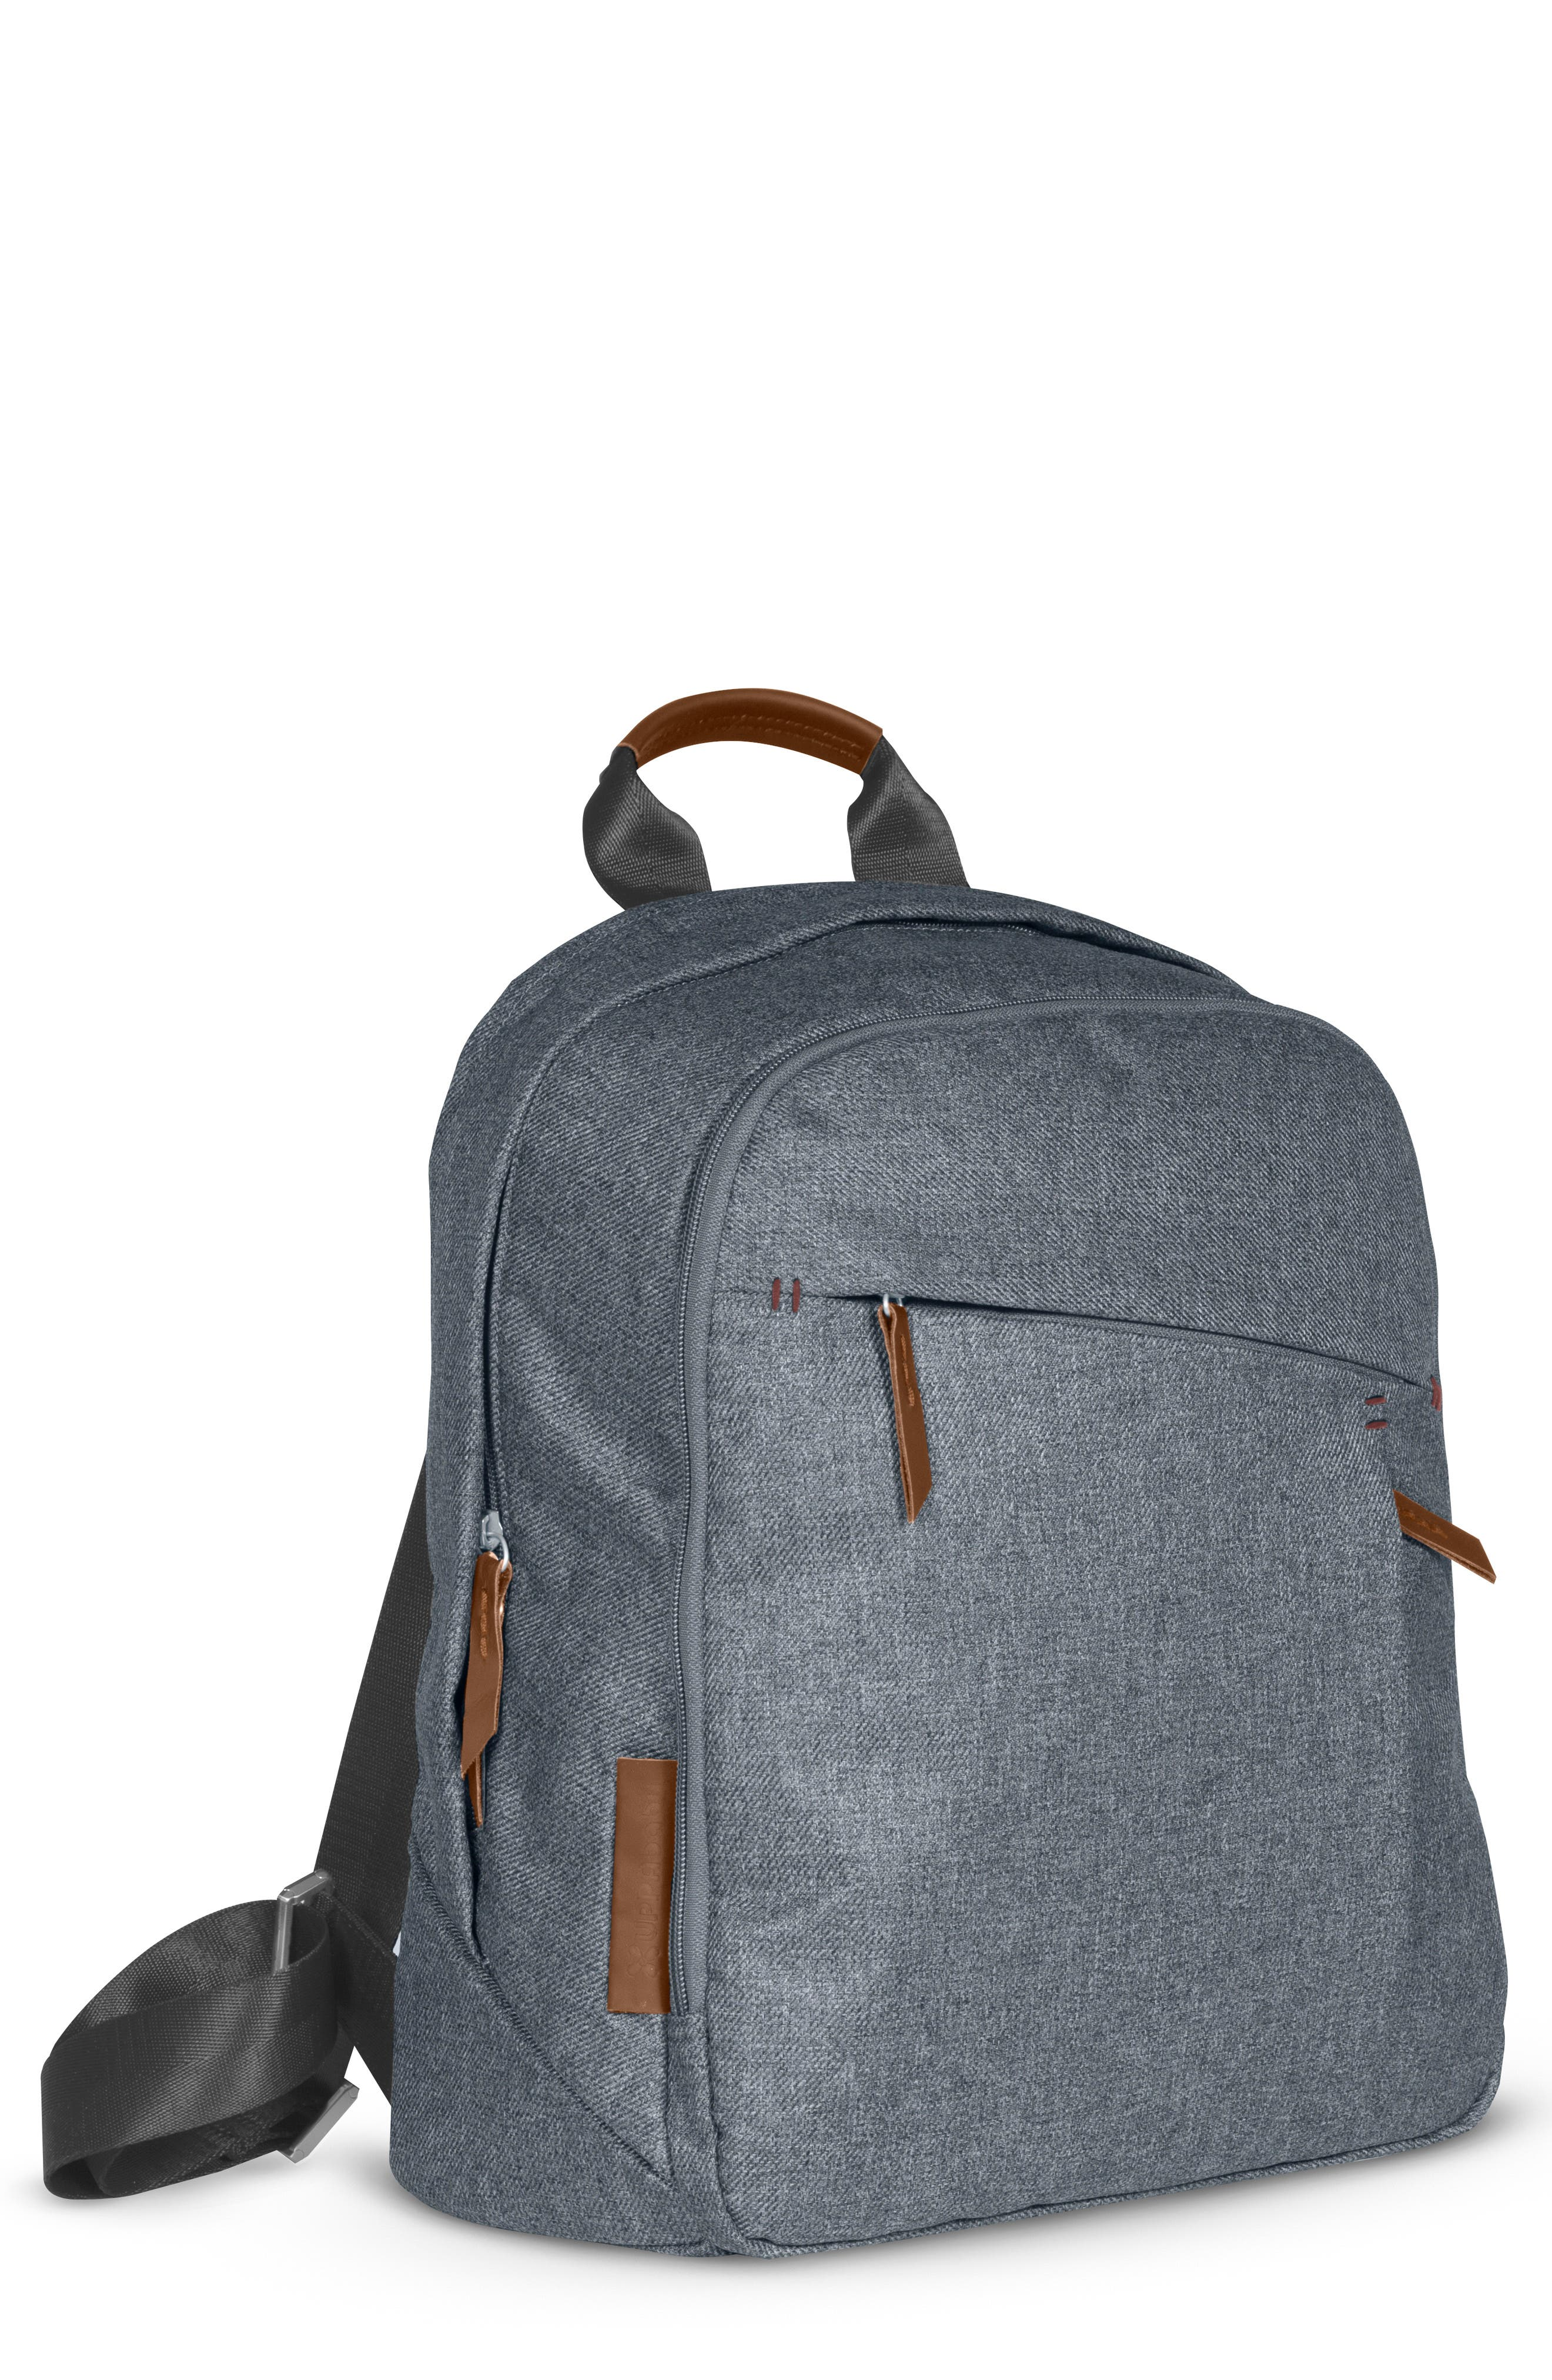 Infant Uppababy Diaper Changing Backpack  Blue